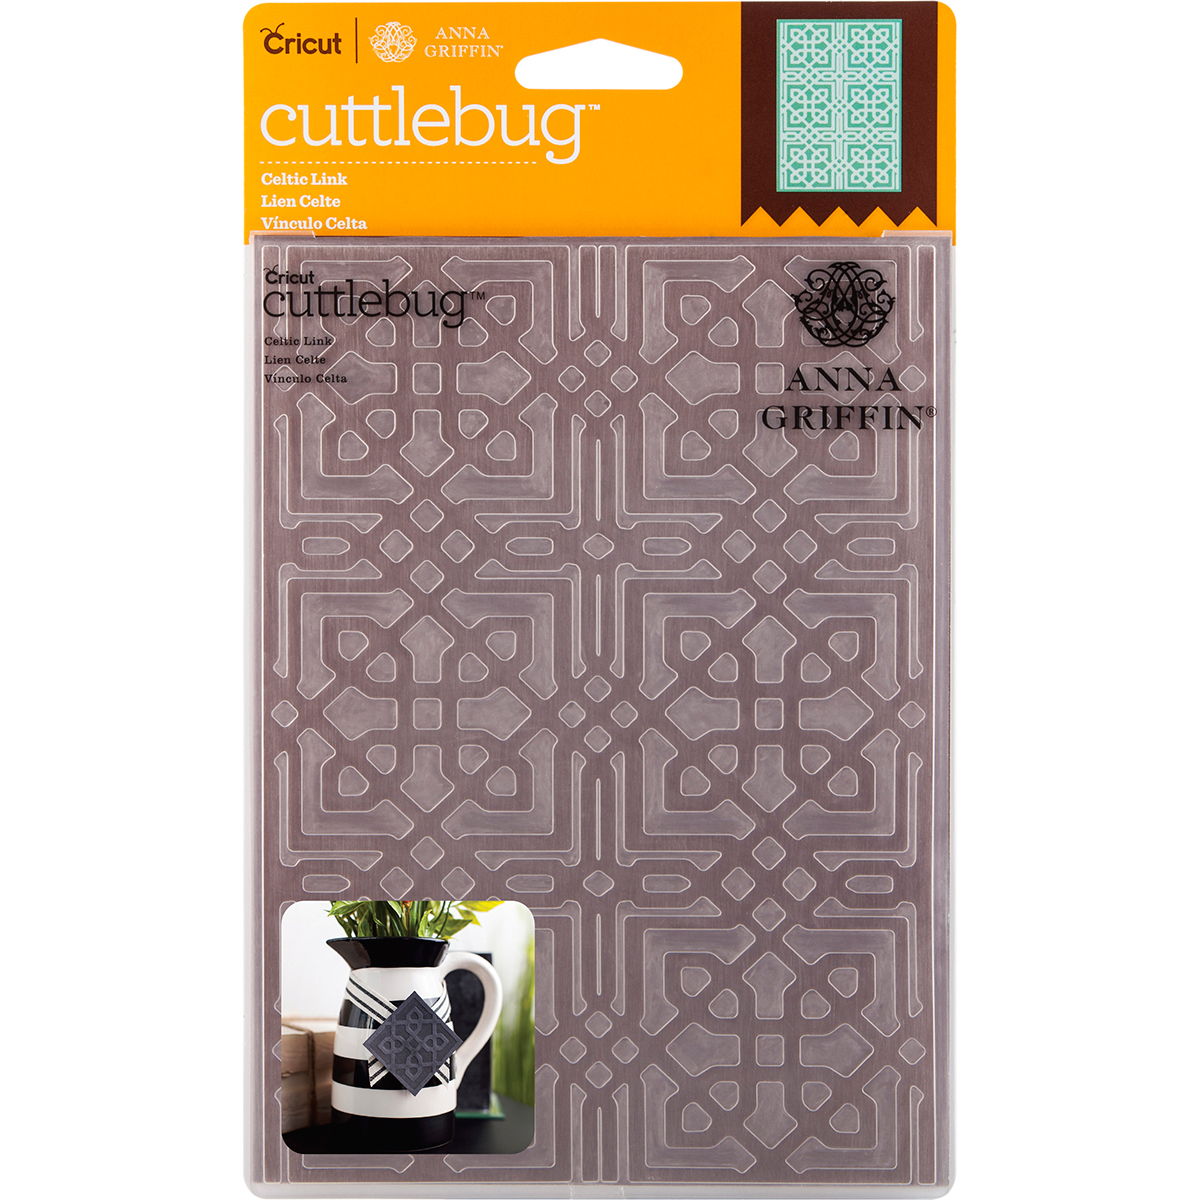 "Cuttlebug 5"" x 7"" Embossing Folder By Anna Griffin, Celtic Link"